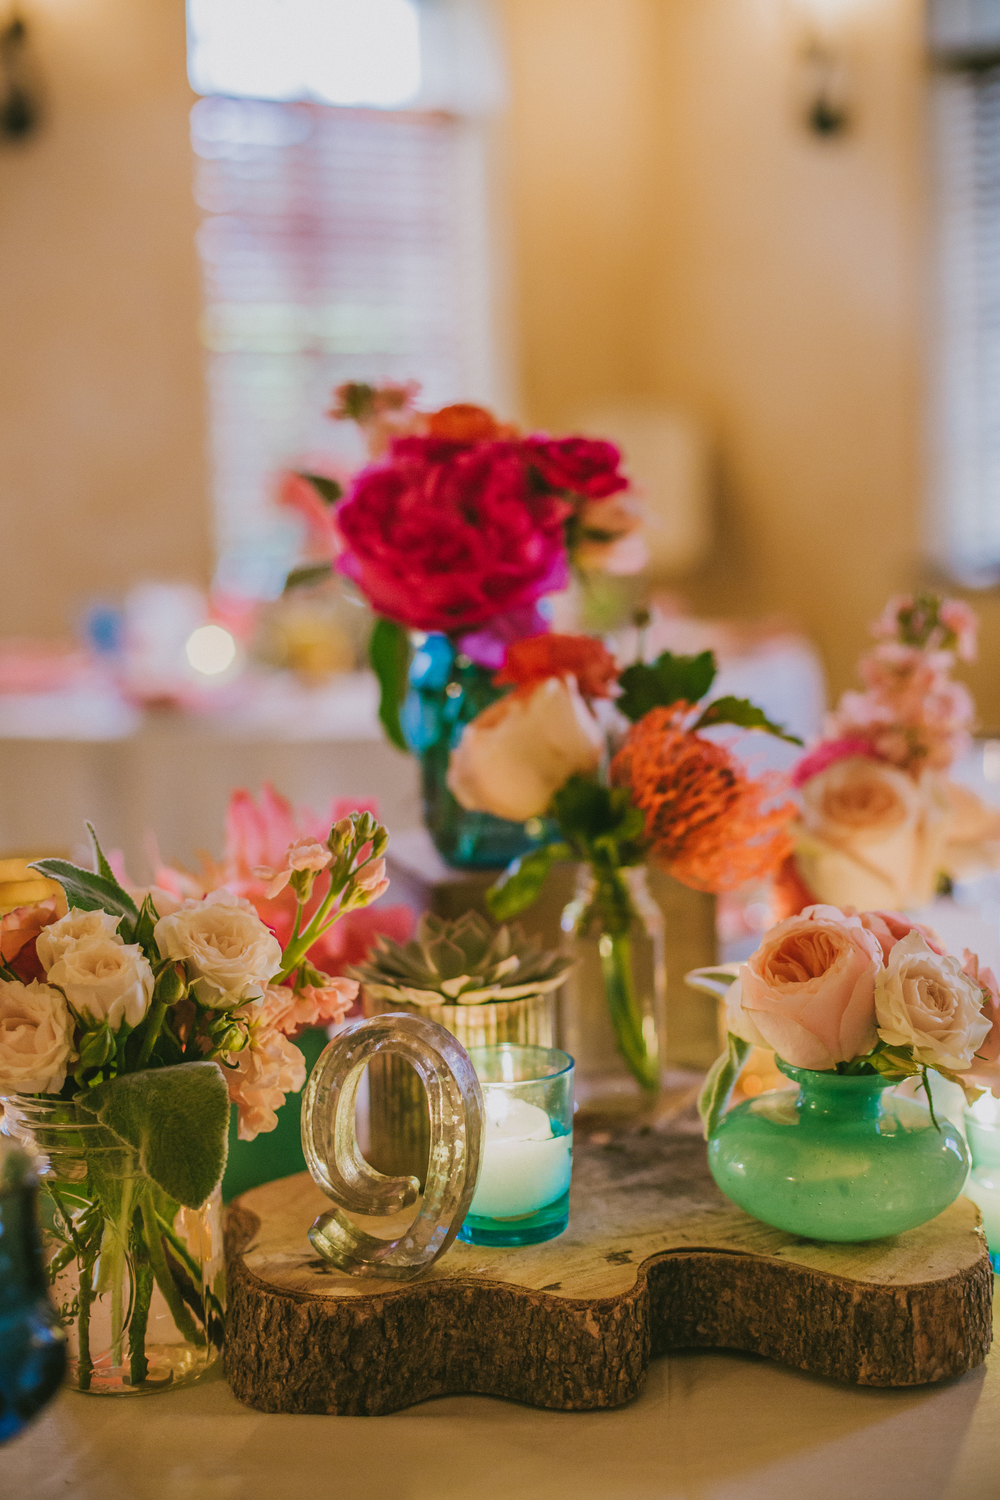 Powel Crosley Estate Wedding, Oh Hello Events, Jessica Charles Photography